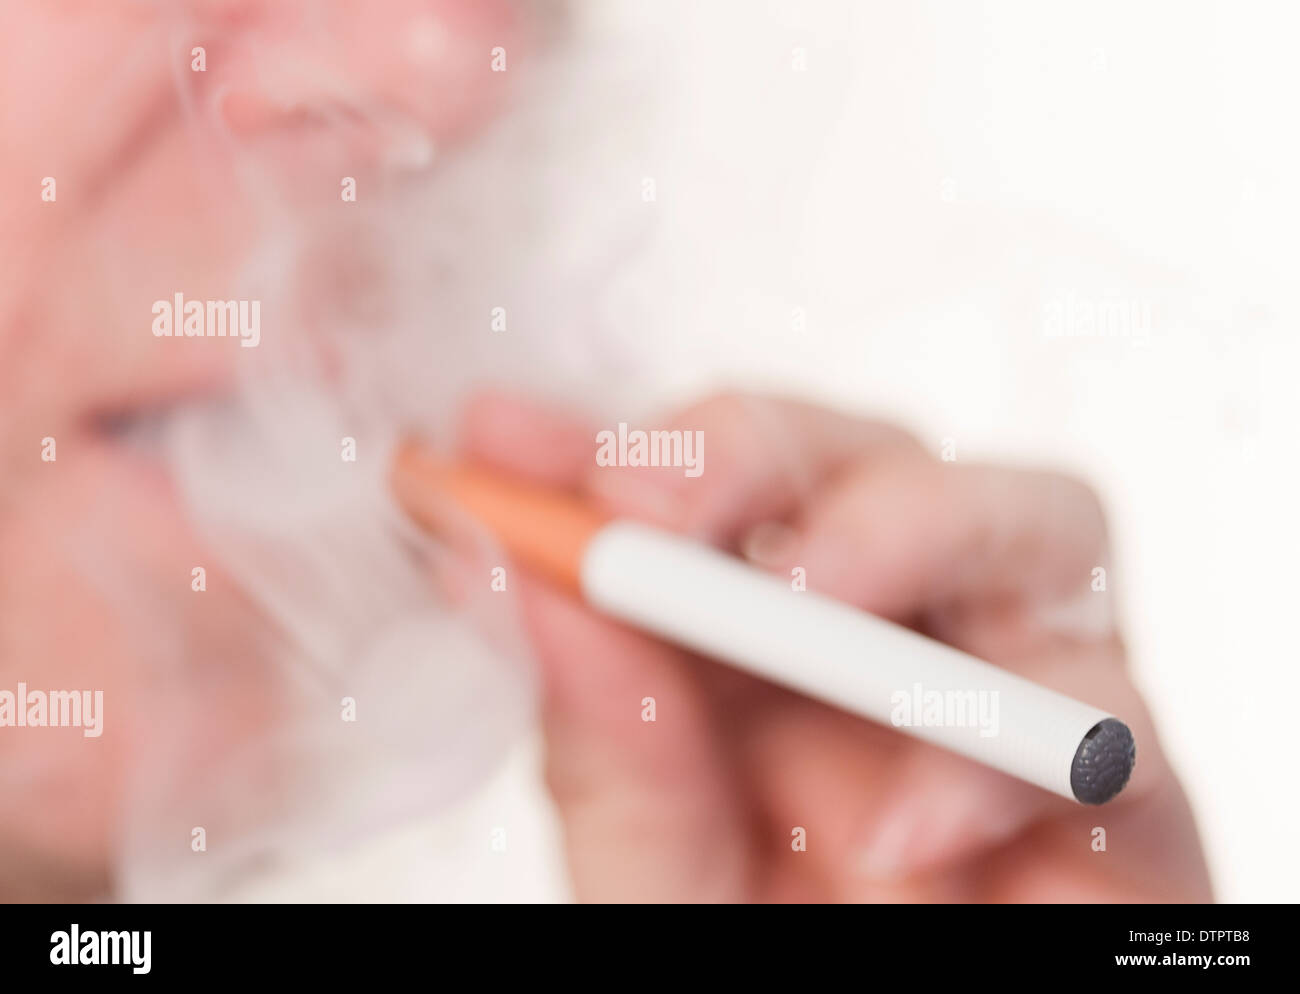 smoking or vaping an E or electronic cigarette - Stock Image